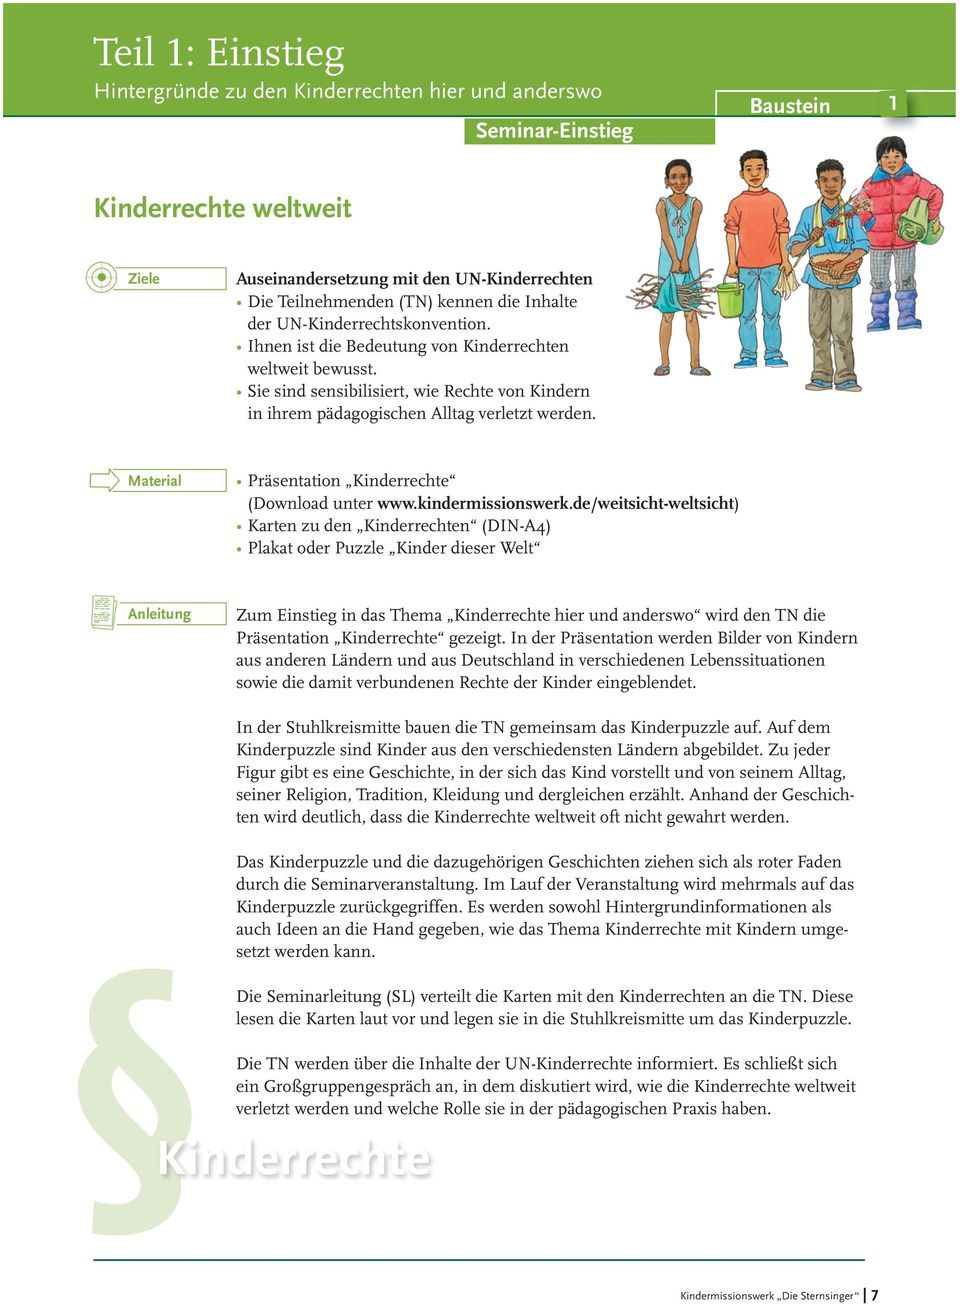 Material Präsentation Kinderrechte (Download unter www.kindermissionswerk.